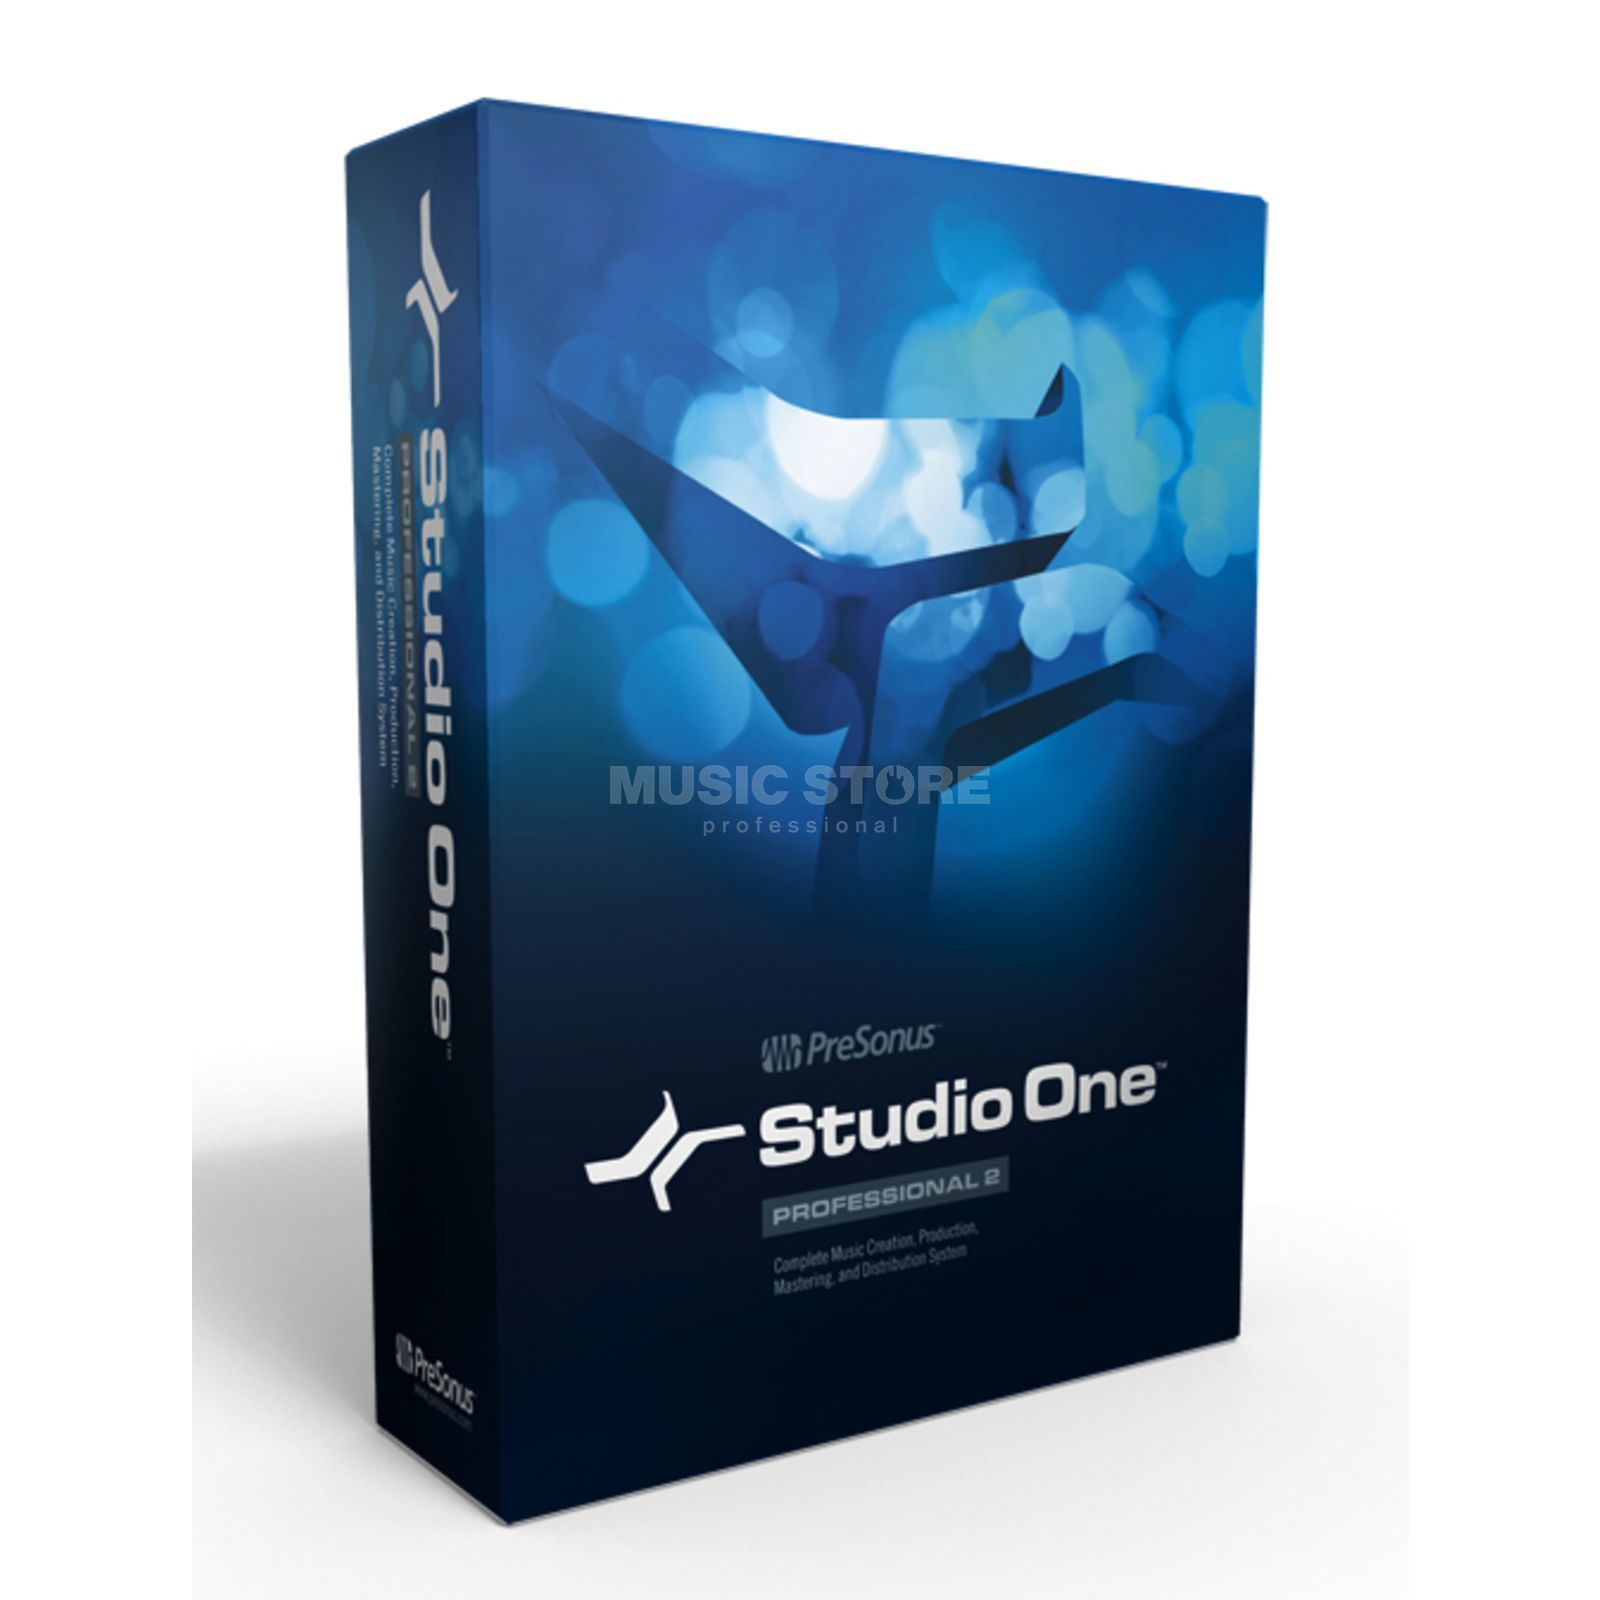 Presonus Studio One Artist To Professional V2.0 Upgrade Product Image